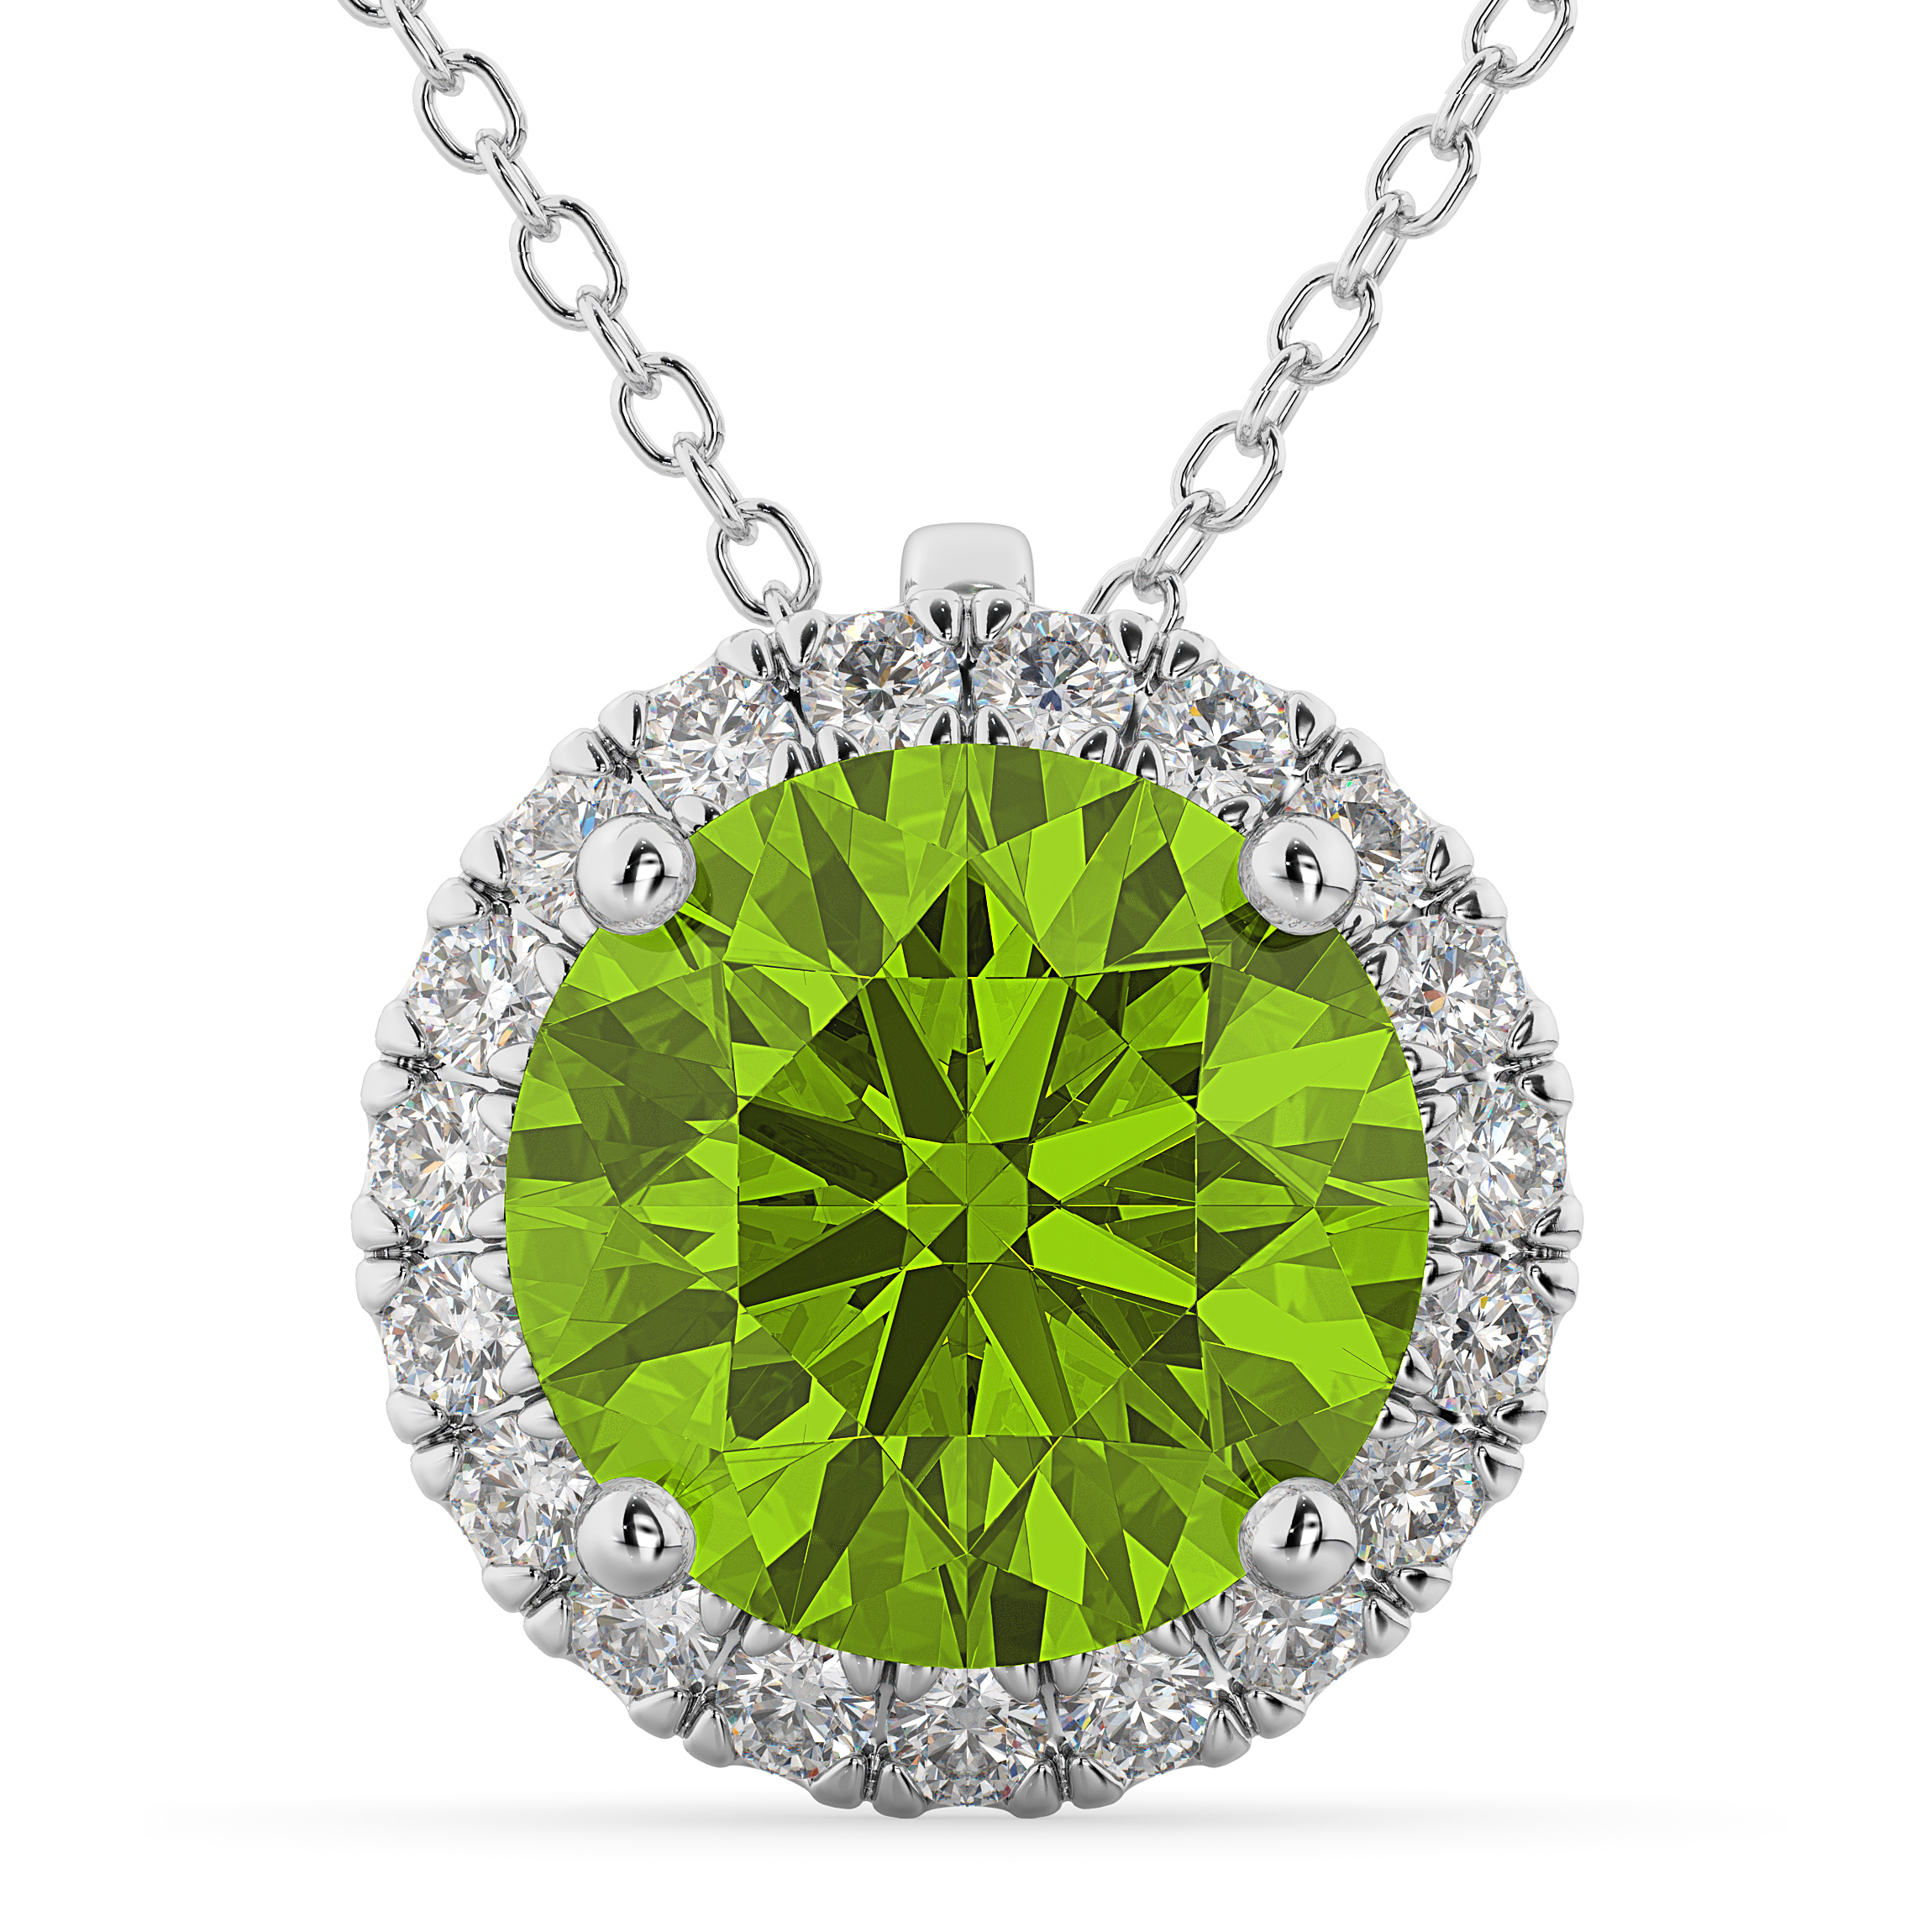 Halo Round Peridot Amp Diamond Pendant Necklace 14k White